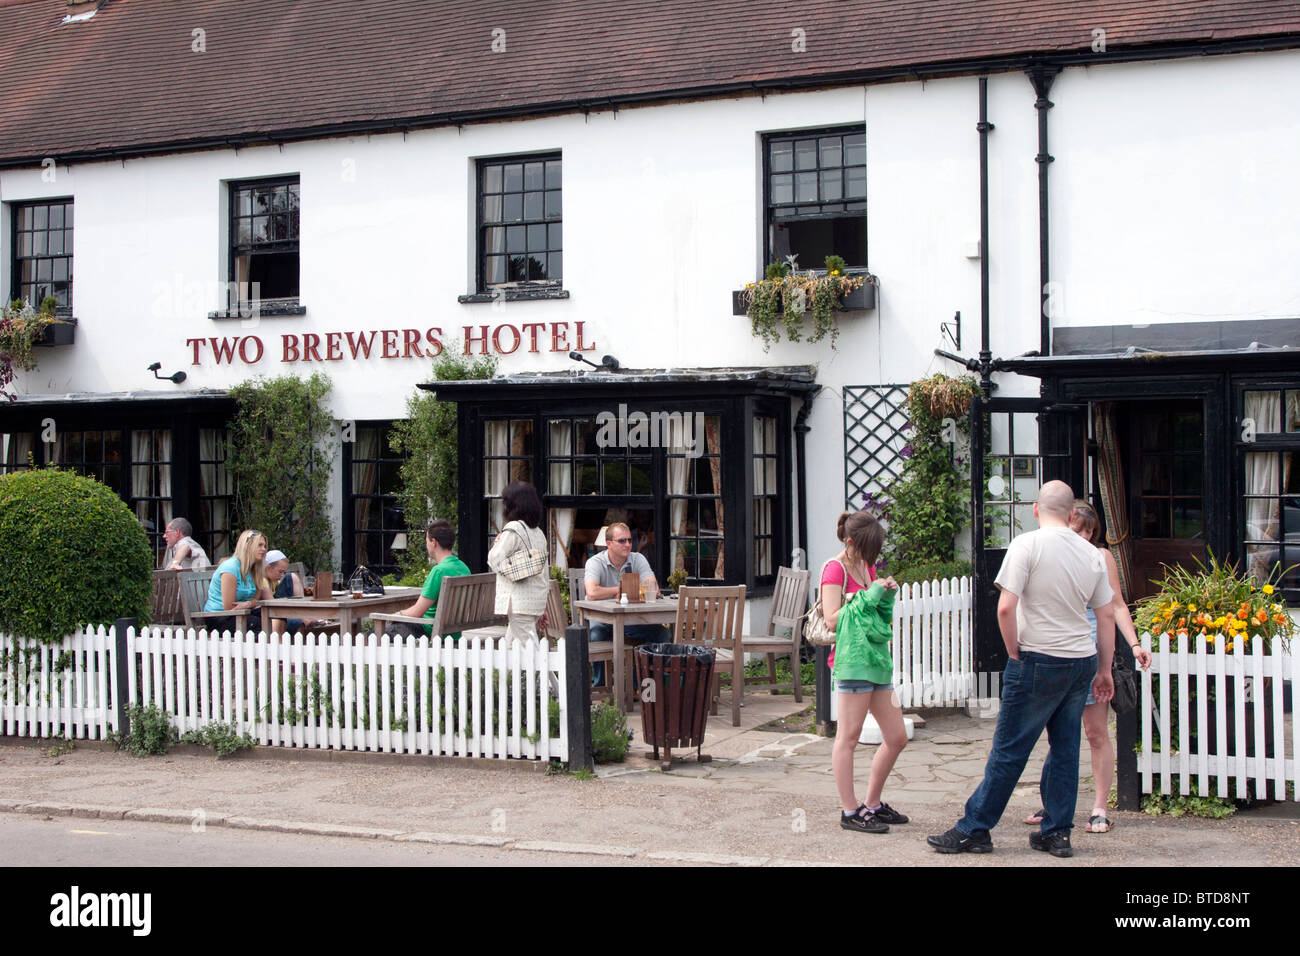 Two Brewers Hotel & Pub  - Chipperfield Village - Hertfordshire - Stock Image